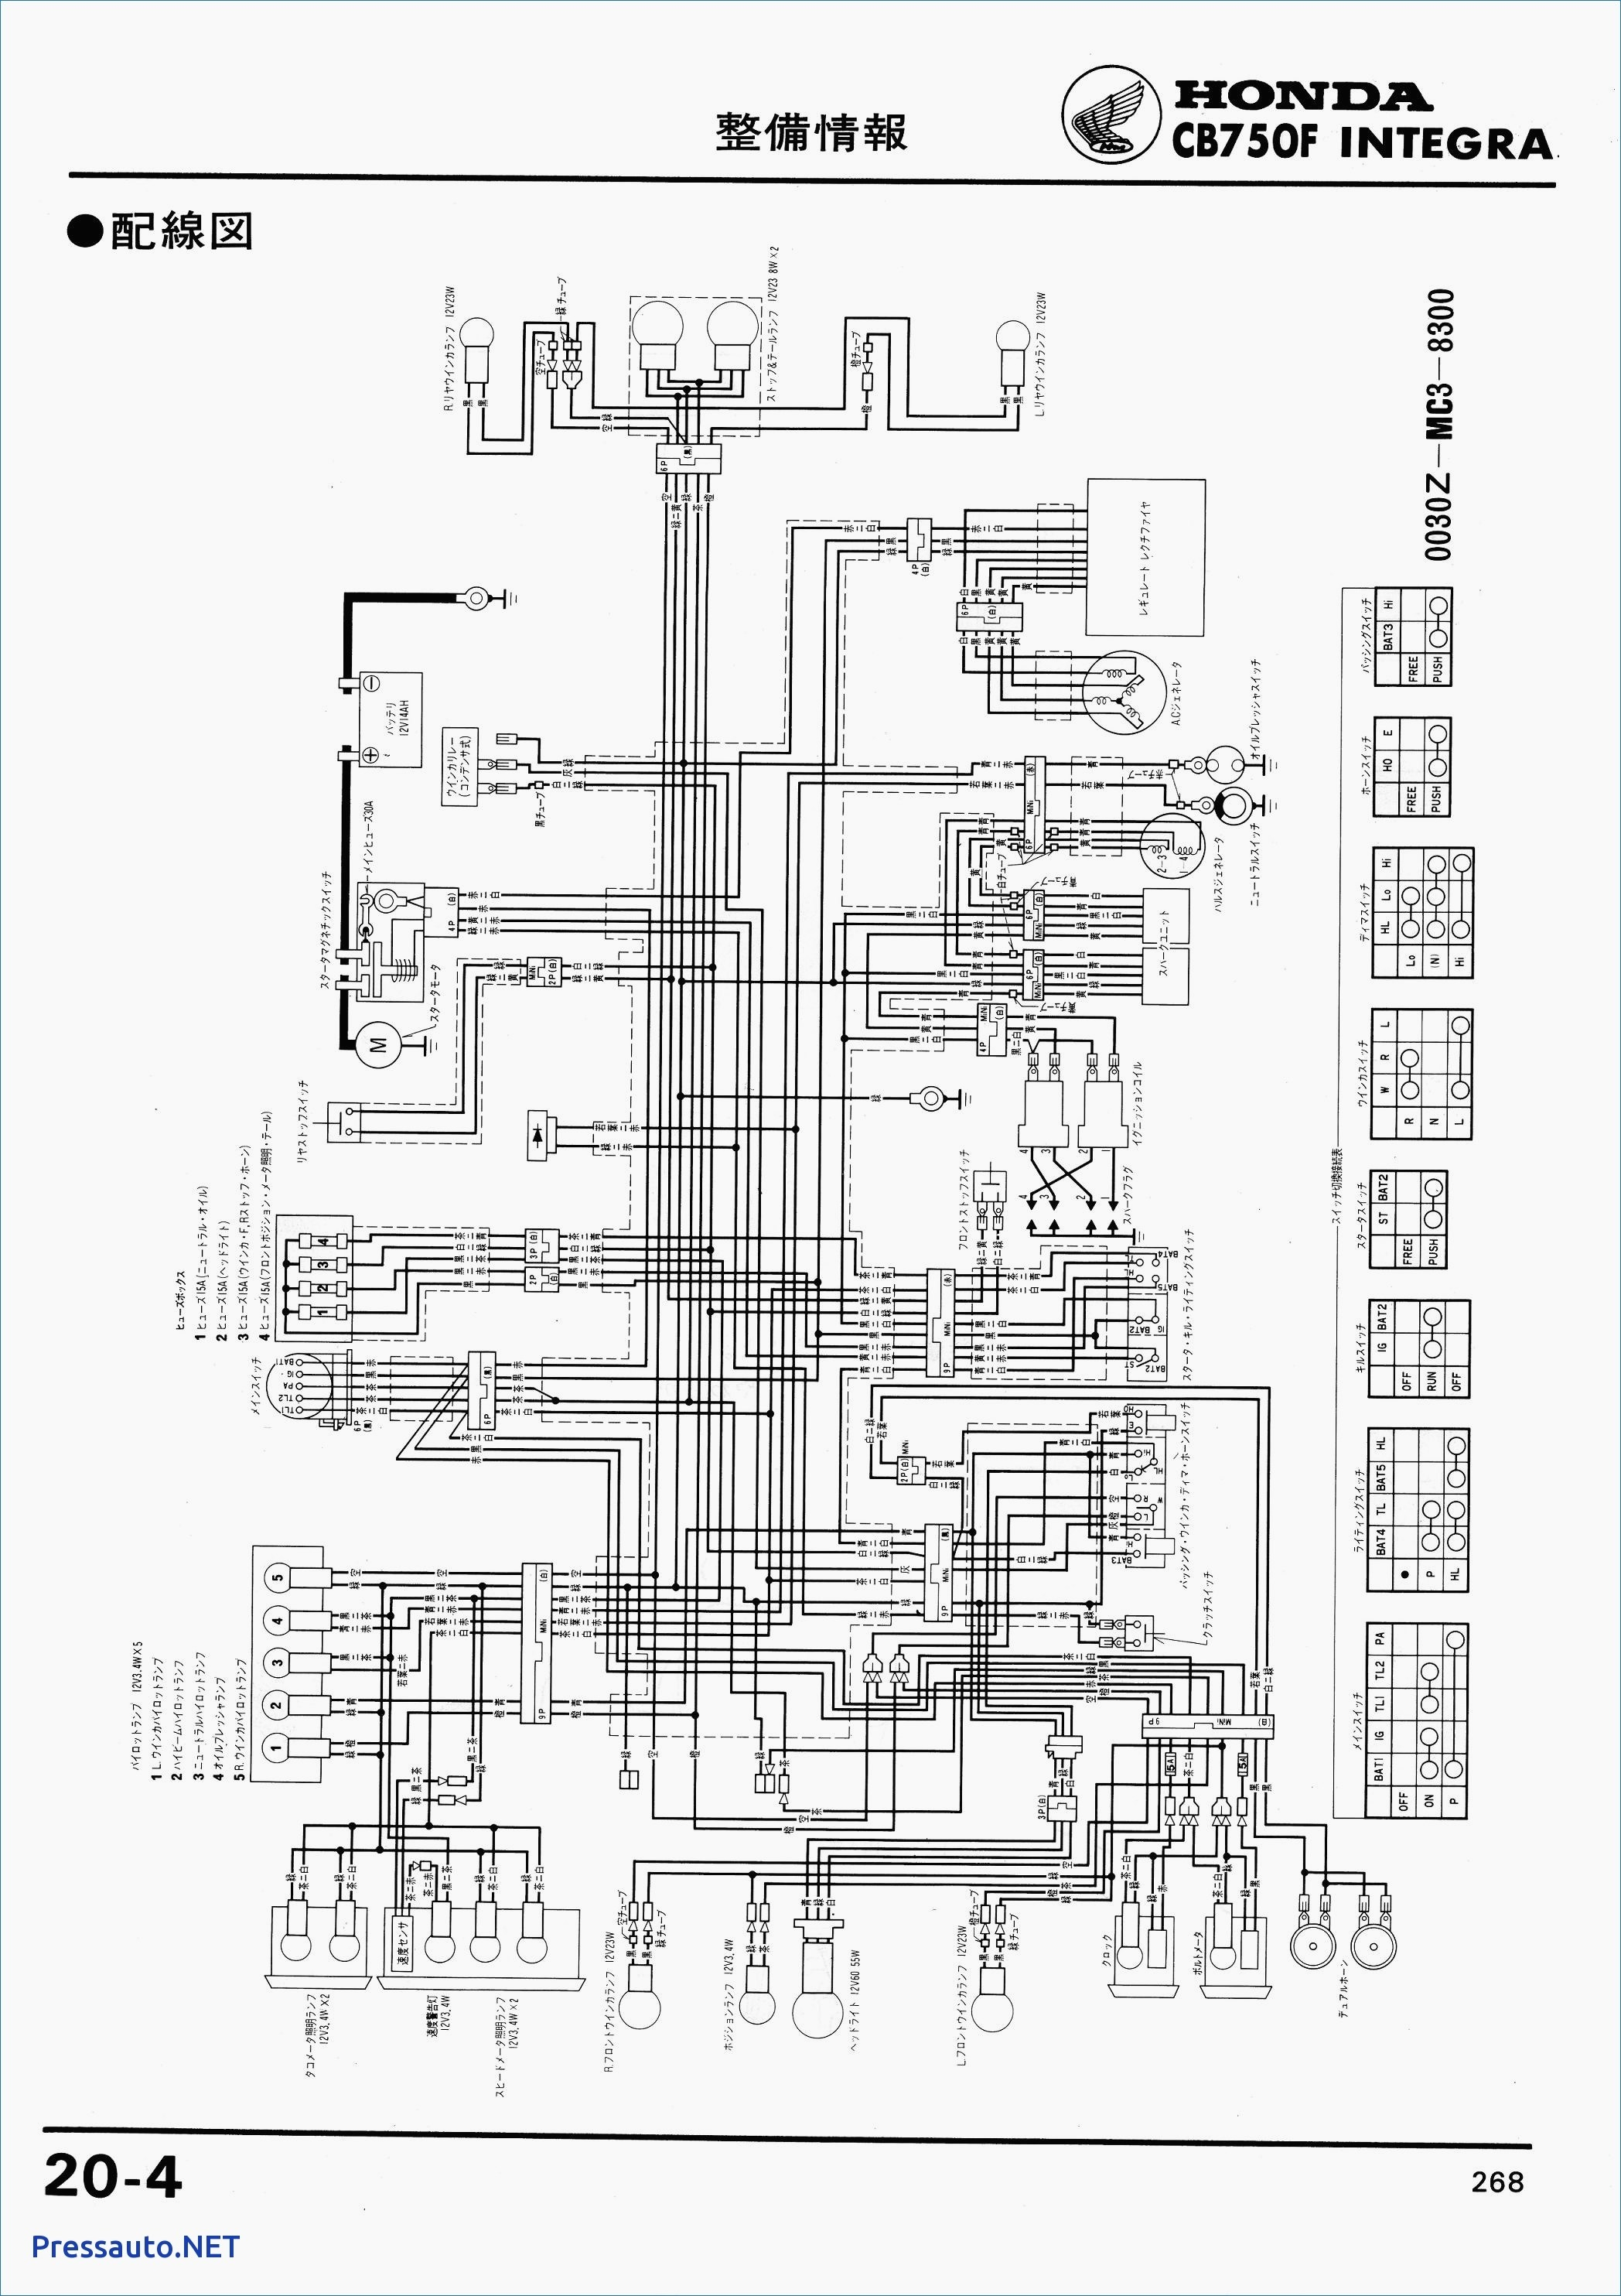 Wiring Yale Diagram Glc Wiring Diagram Database